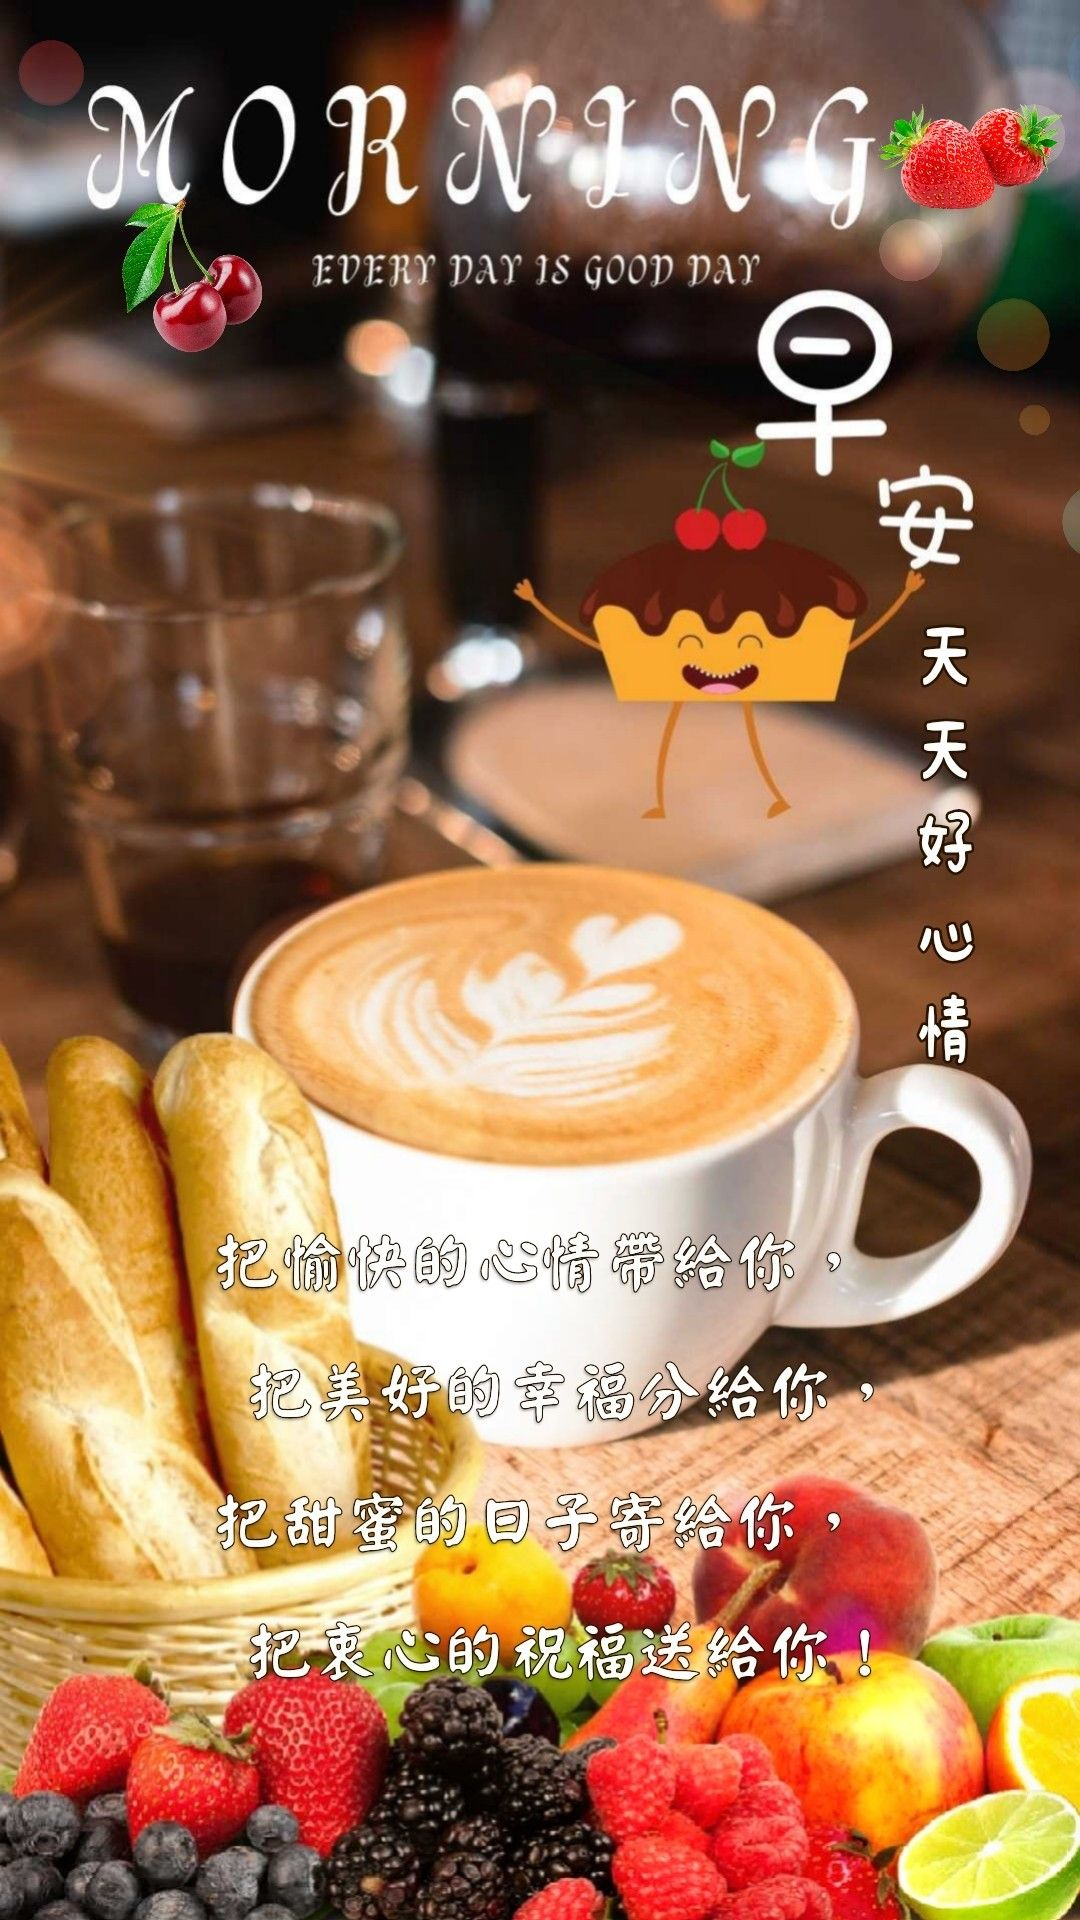 天天好心情 早安 in 2020 Morning greeting, Food, Latte